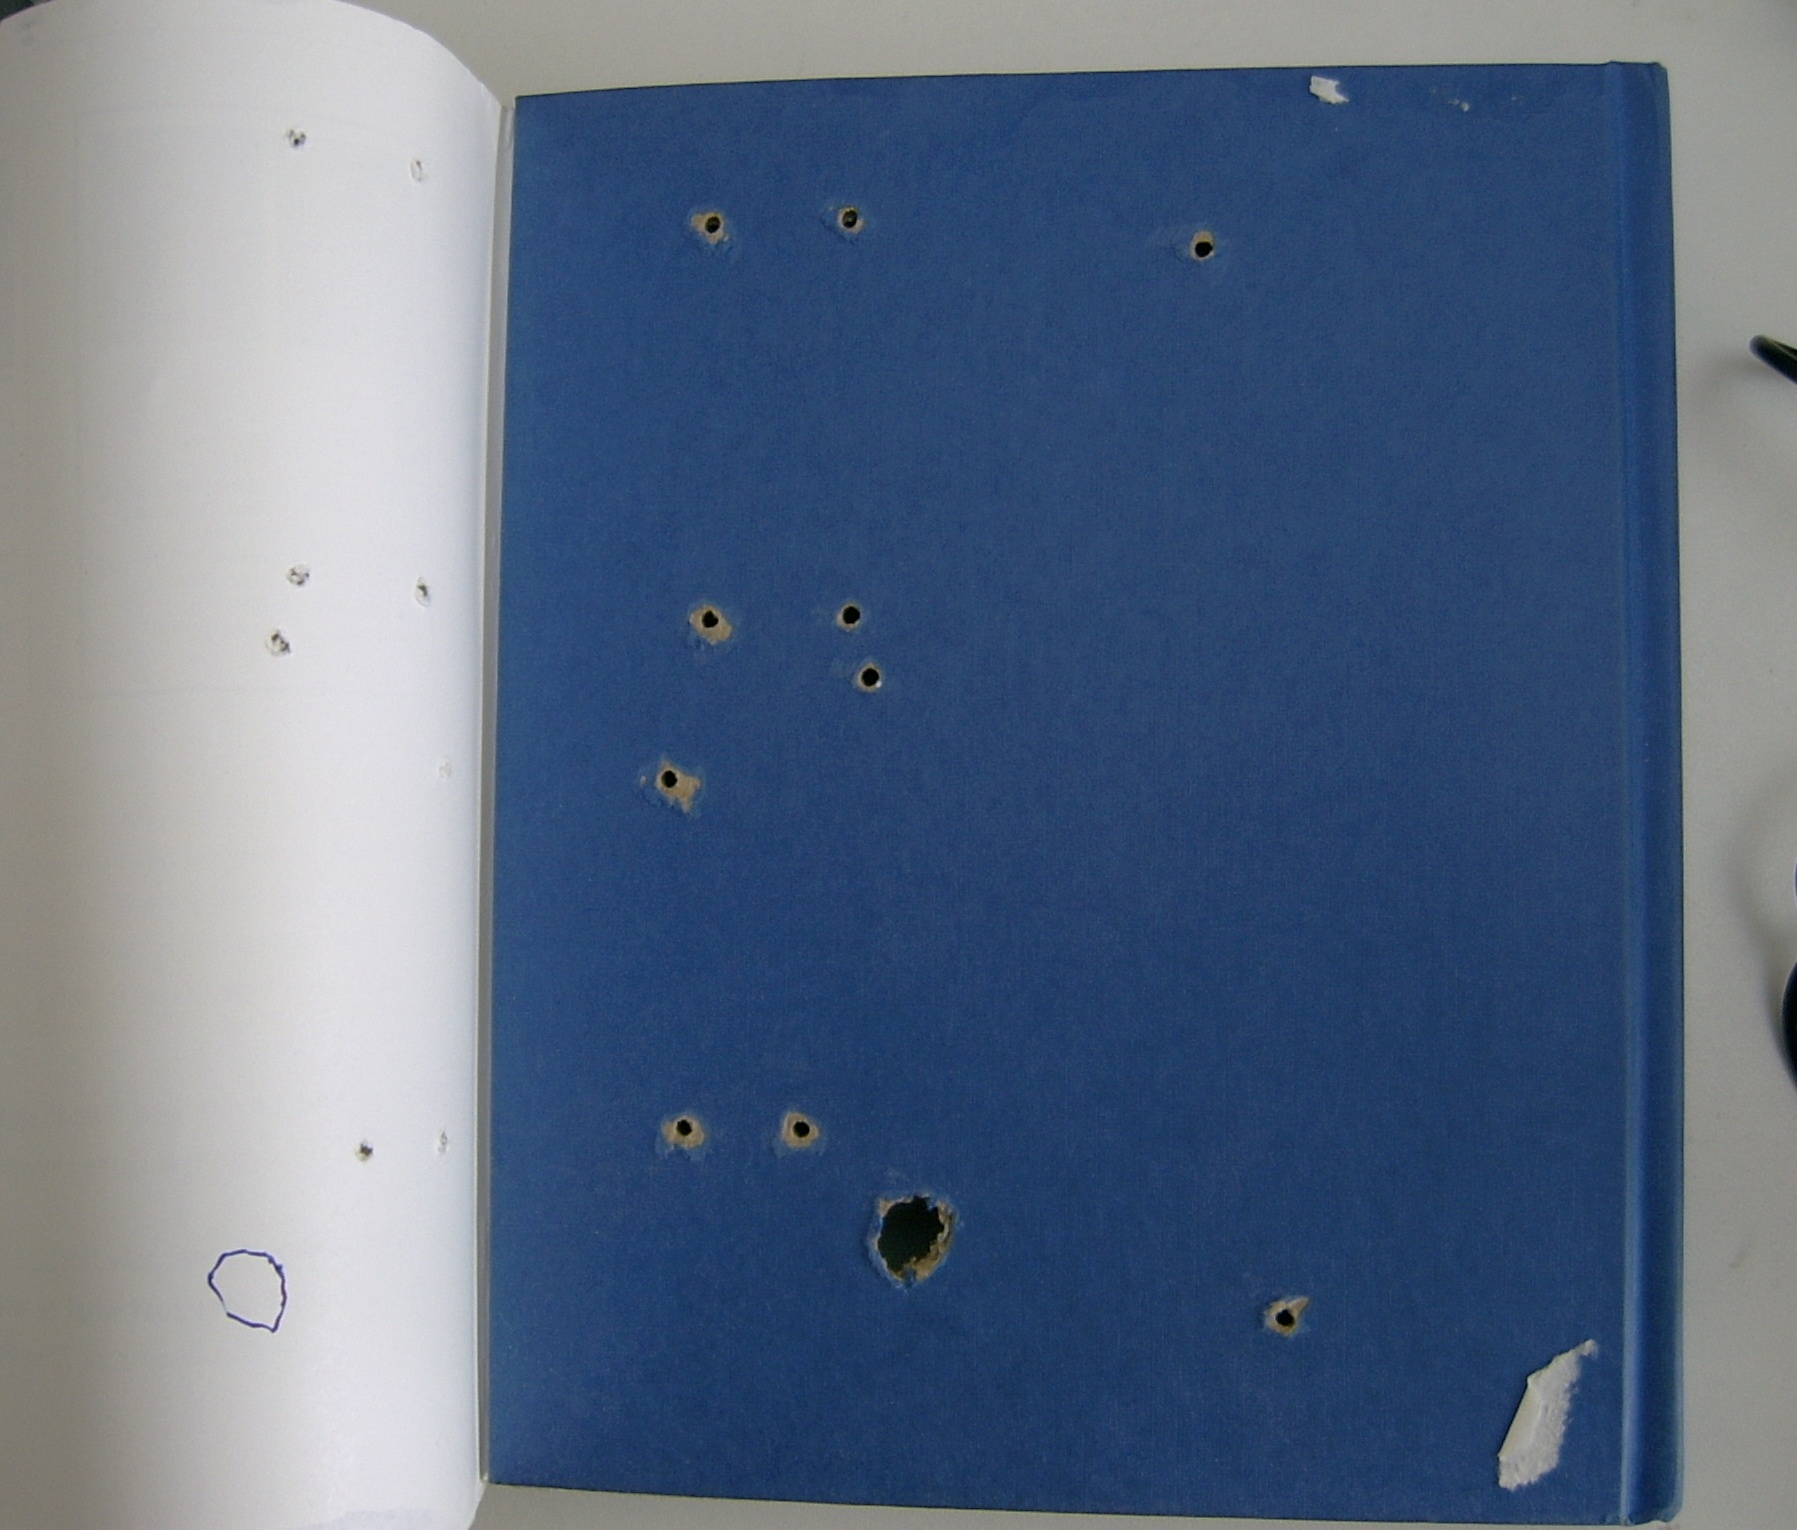 Picture of Holes for Attaching Circuit Boards